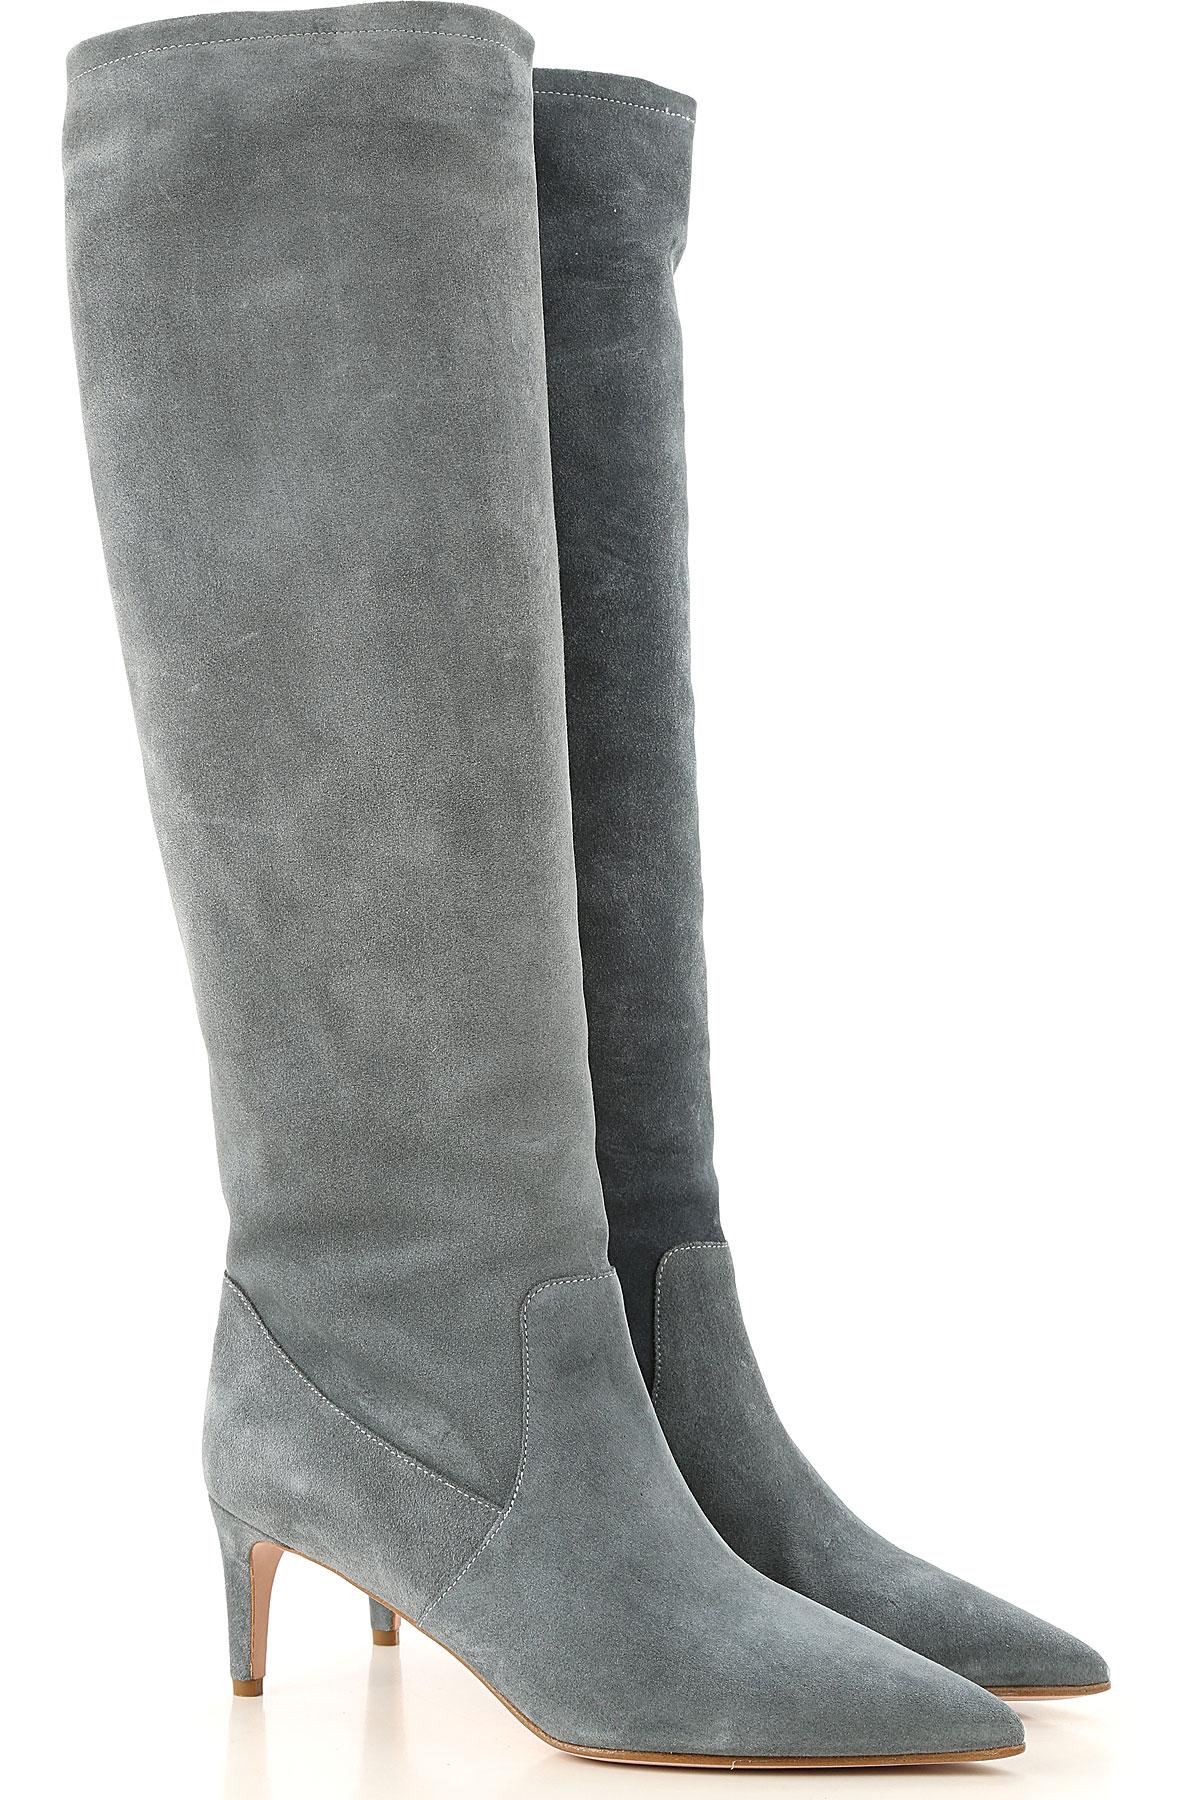 RED Valentino Boots for Women, Booties On Sale, Powder Grey, Suede leather, 2019, 10 6 7 9